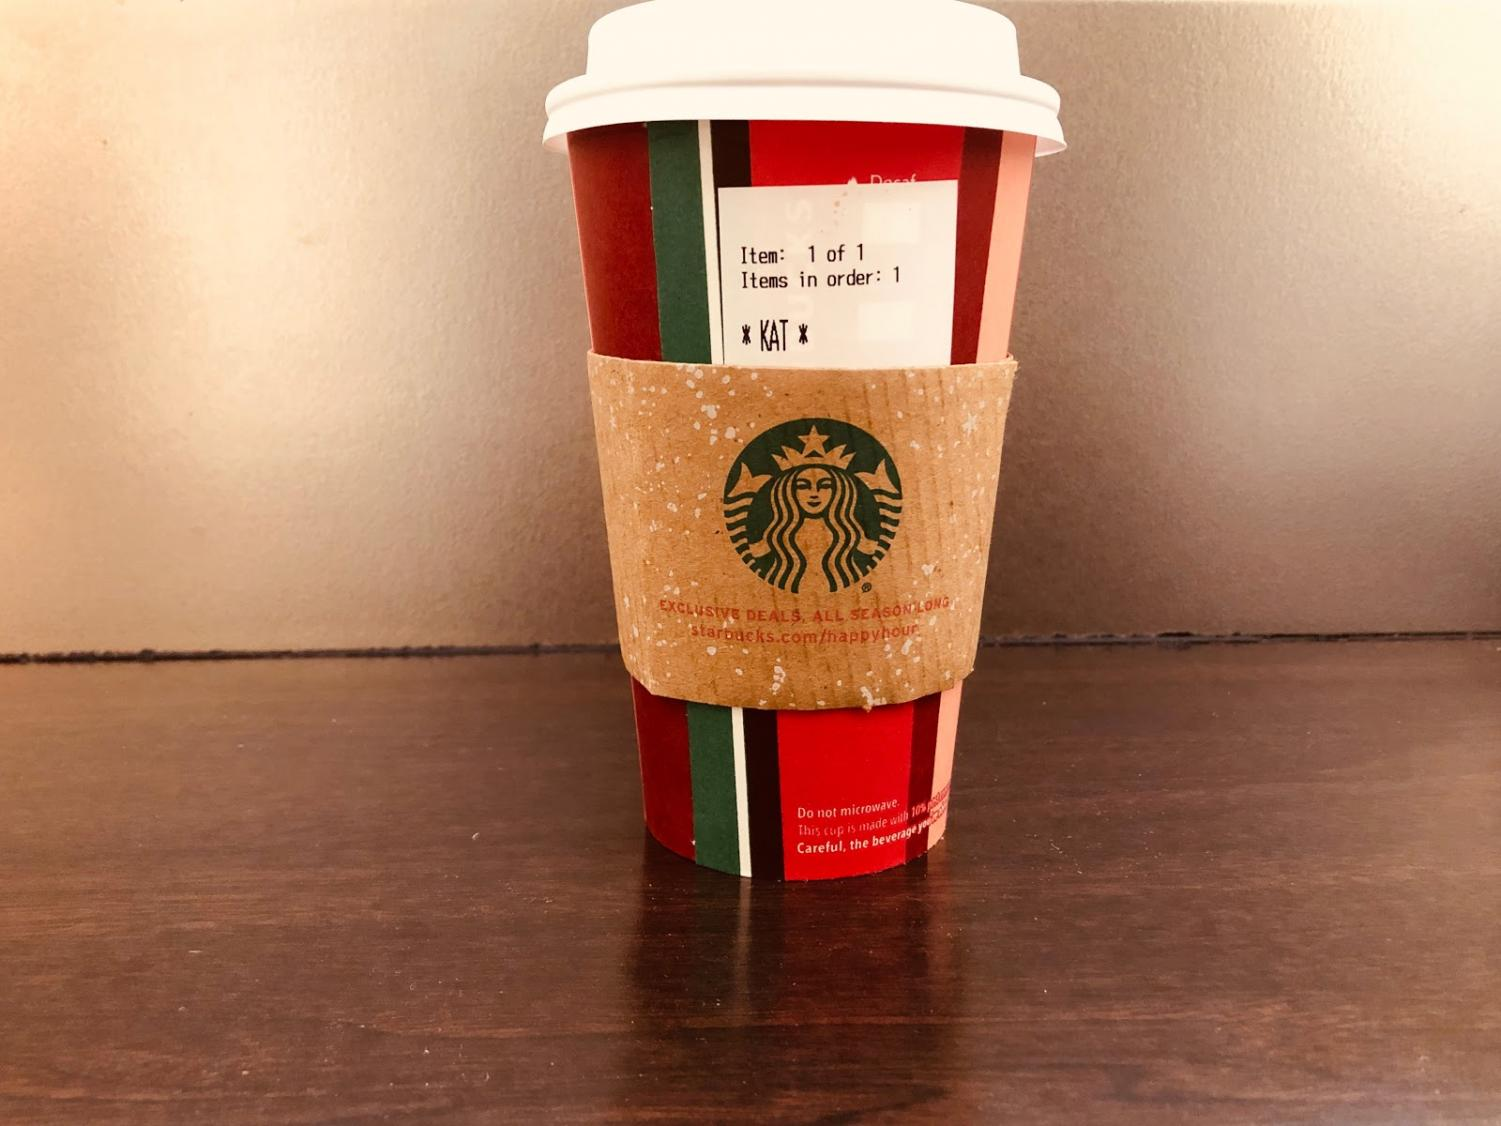 The Peppermint Mocha, one of Starbucks' signature holiday drinks, as well as the new holiday cups introduced each year, bring a festive feeling into the atmosphere.